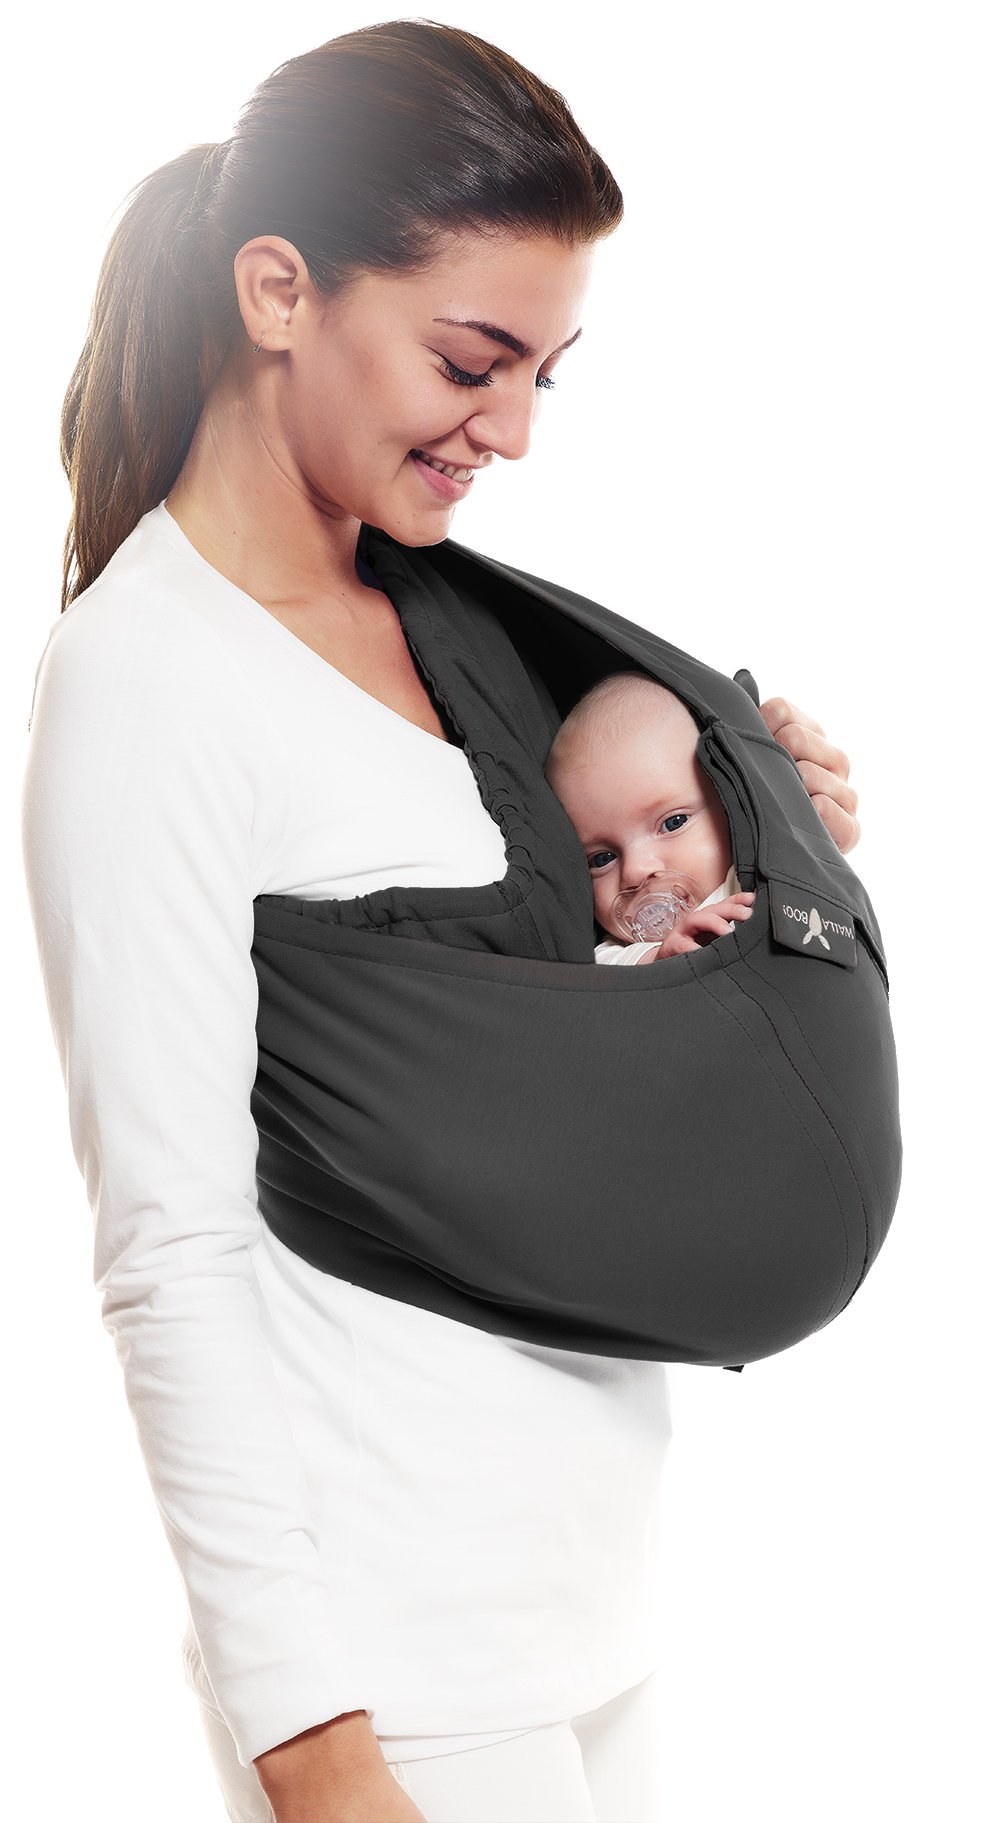 Wallaboo Wrap Sling Carrier Connection, Easy Adjustable, Ergonomic, 3 Carrying Positions, Newborn 8lbs to 33 lbs, Soft Breathable Cotton, 3 Sitting Positions, EU Safety Tested, Color: Black Wallaboo Ergonomically correct design with three natural positions: sleep, sit and active - one size fits all Can be used from premature baby through to 33lbs - with easy-to-use features like a full-front opening and an adjustable back Single piece of fabric, no straps, belts or buckles - Partly padded to give extra comfort - No wrapping, no hardware. Ready to wear 4